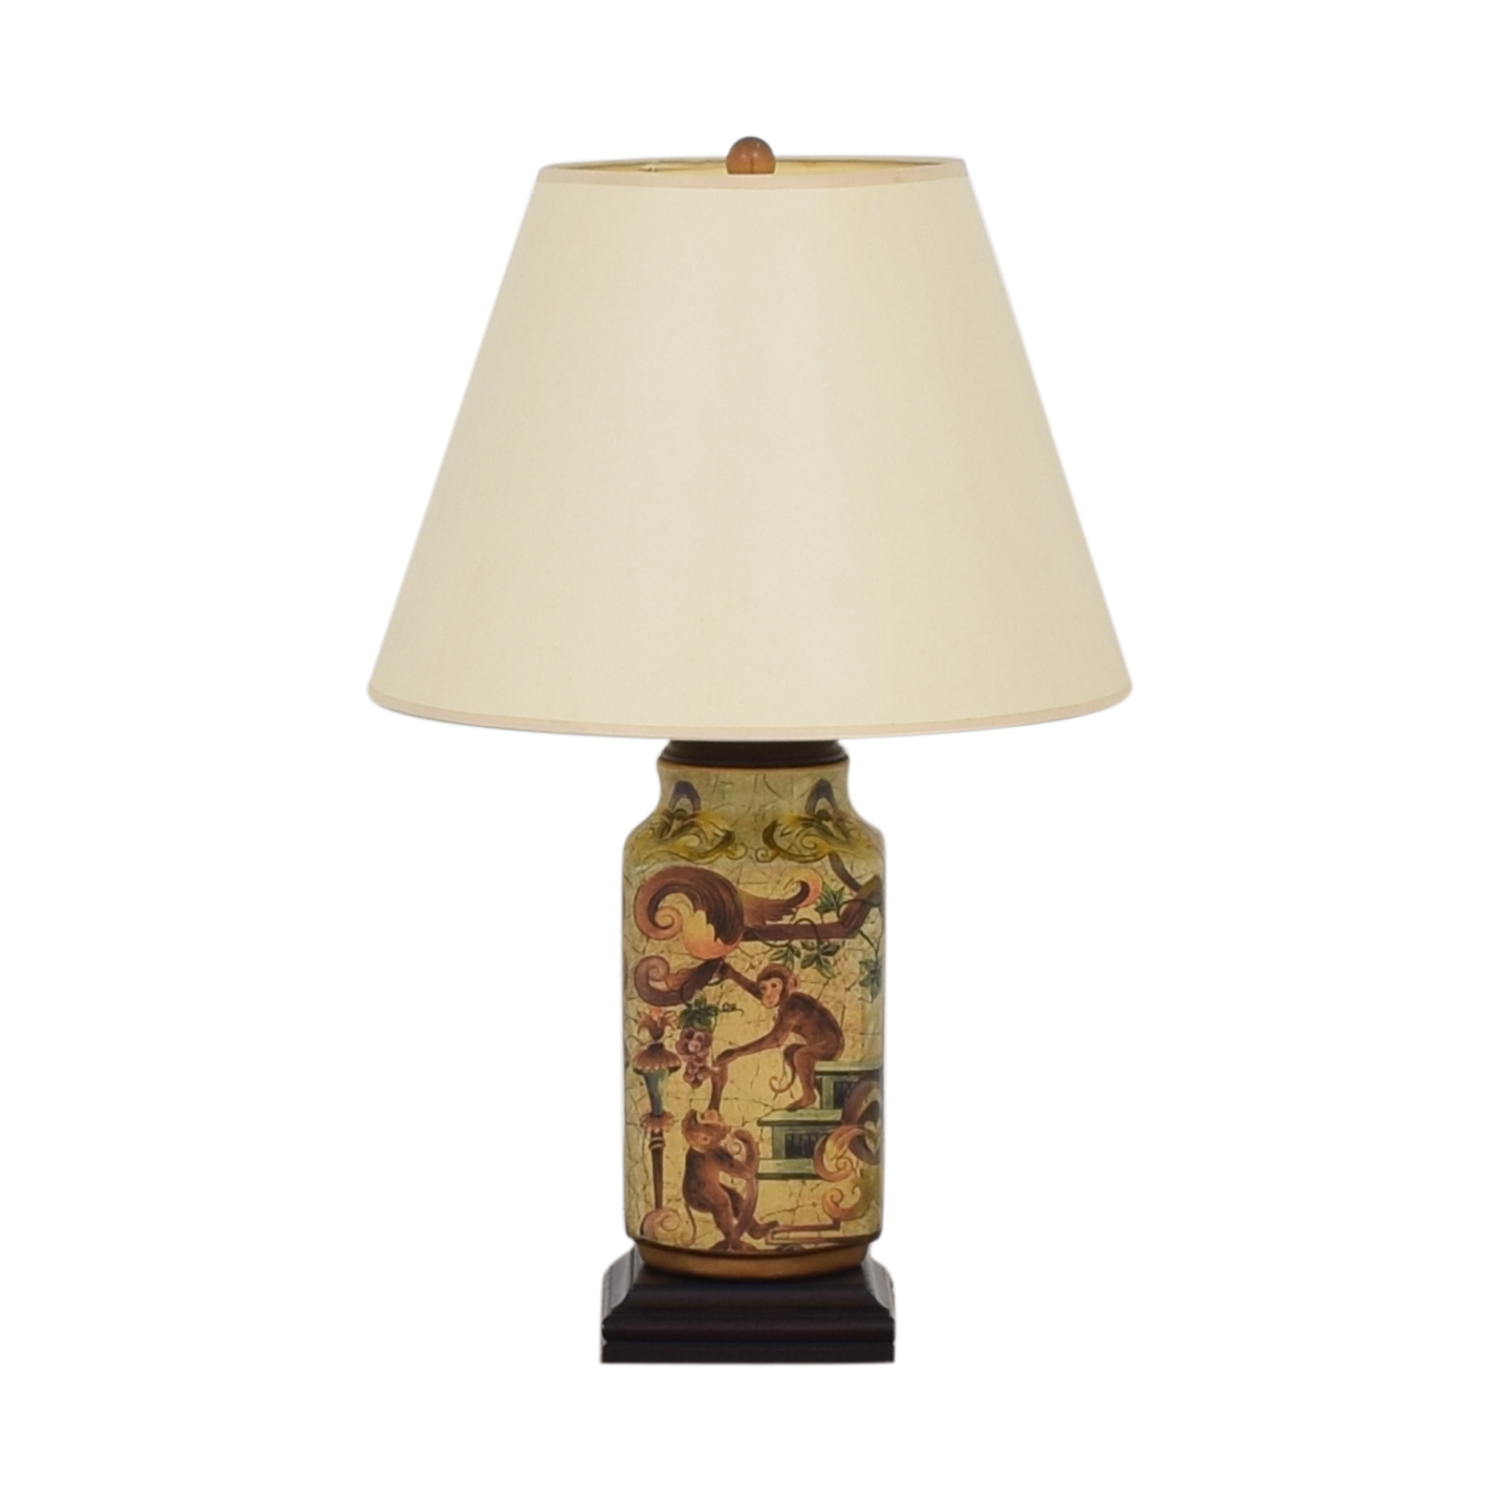 Vintage Decorative Table Lamp second hand